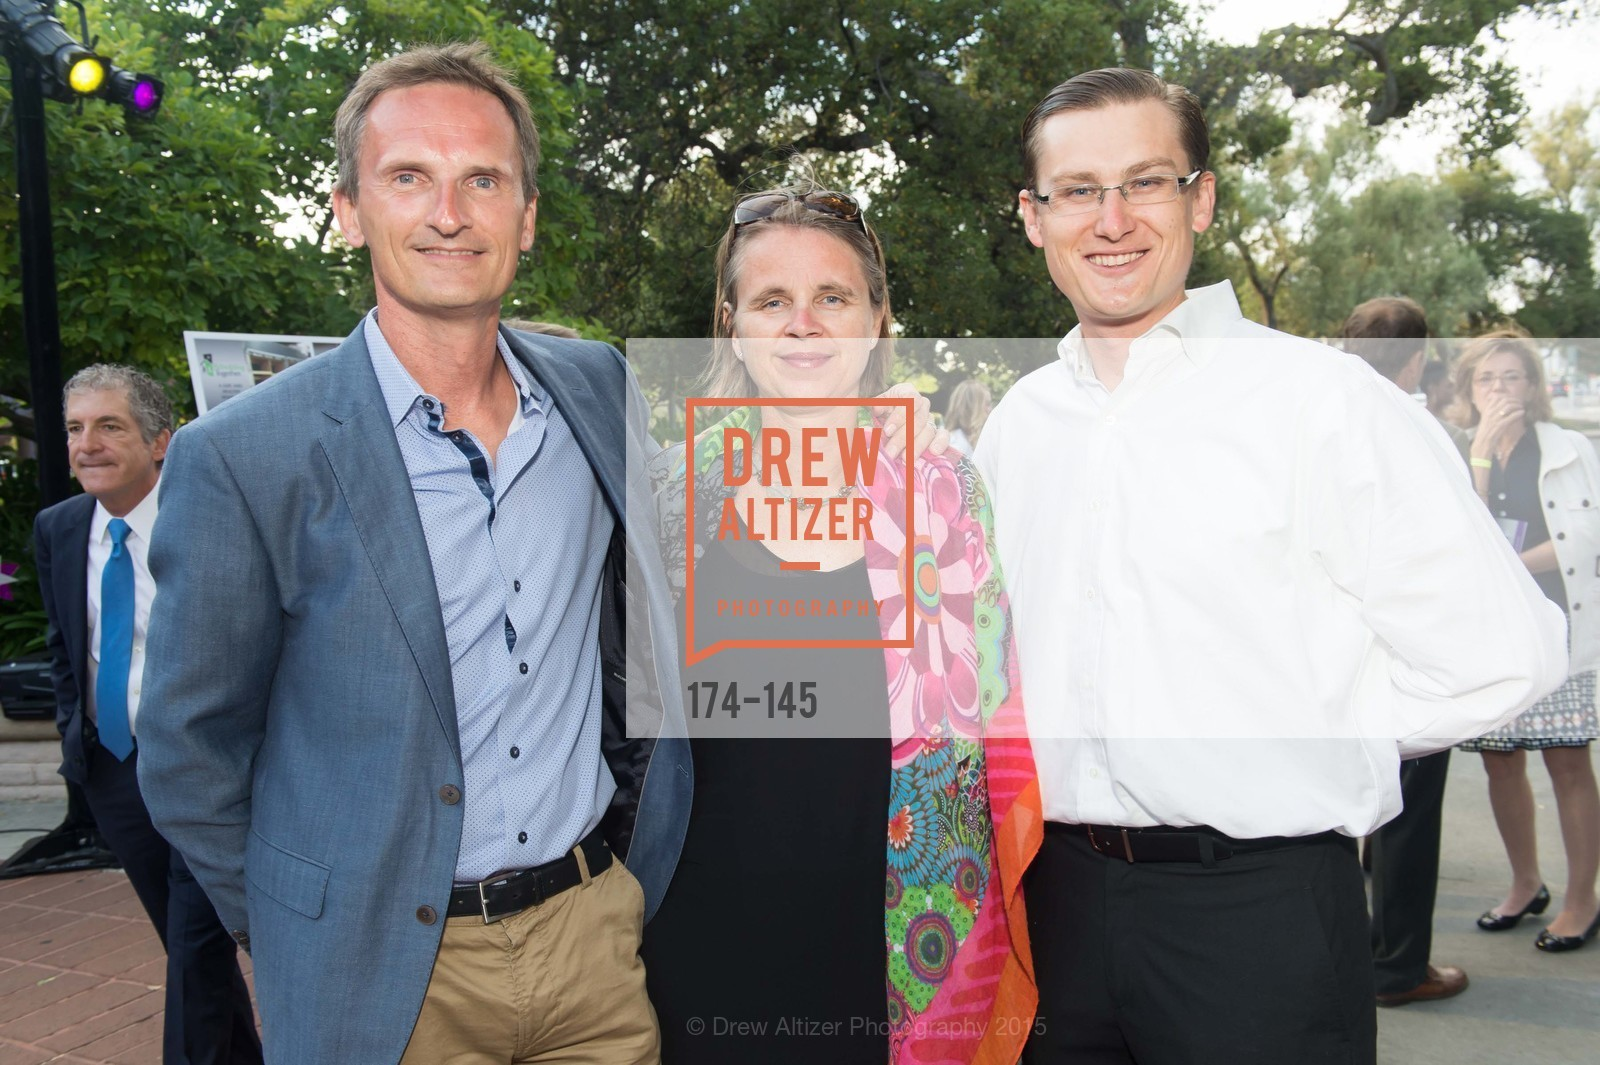 Olivier Lauzeral, Trudy VanHove, Joel Butler, DREAMS HAPPEN: Playhouse Auction and Gala, Stanford Shopping Center, June 5th, 2015,Drew Altizer, Drew Altizer Photography, full-service agency, private events, San Francisco photographer, photographer california